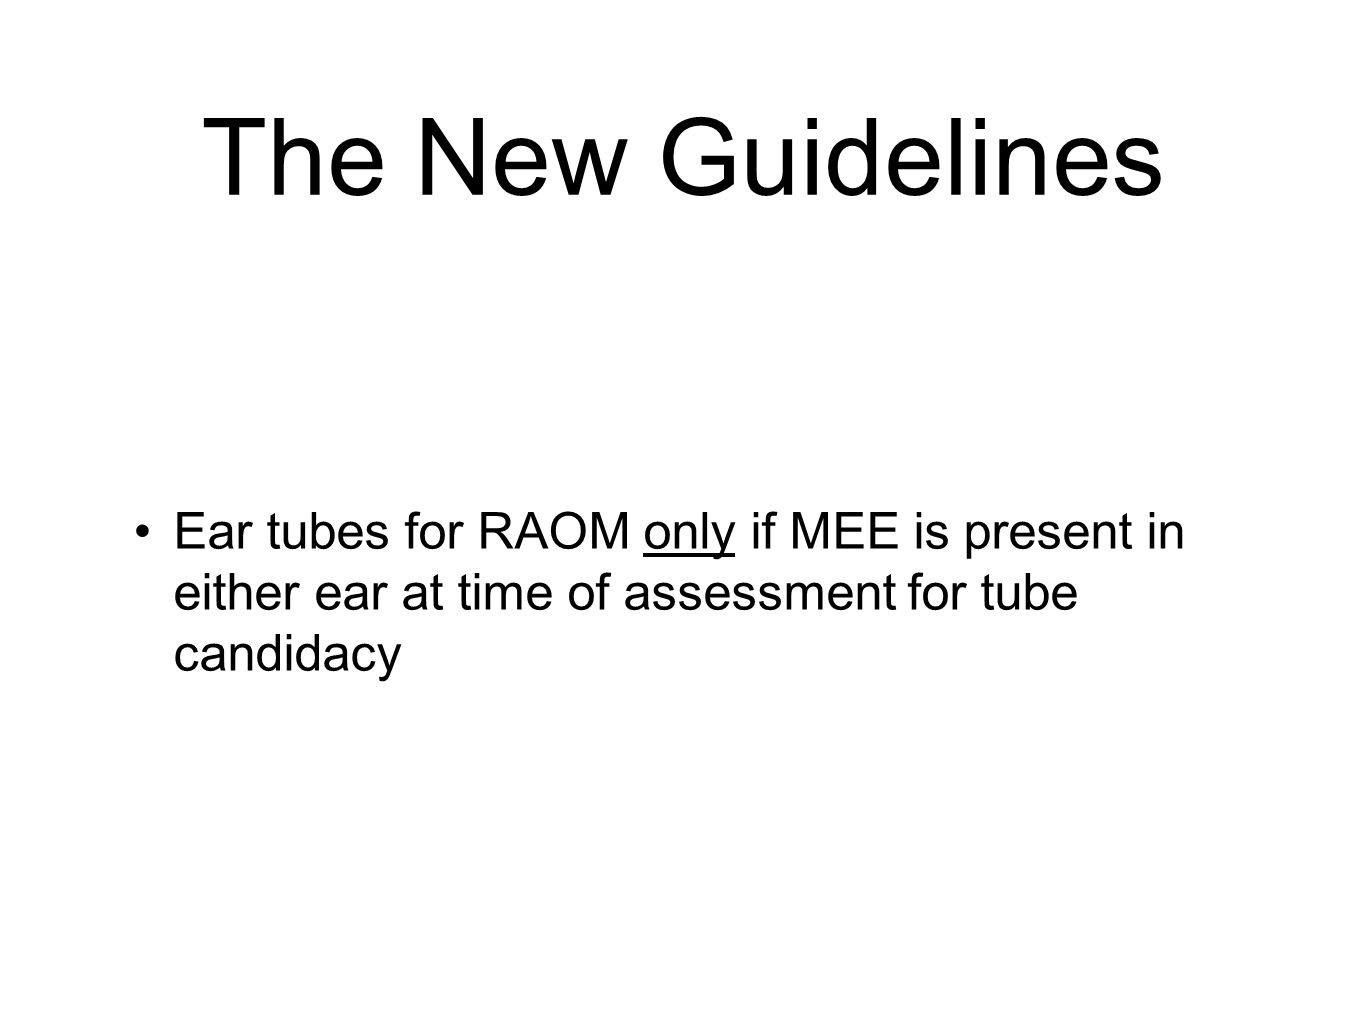 The New Guidelines Ear tubes for RAOM only if MEE is present in either ear at time of assessment for tube candidacy.